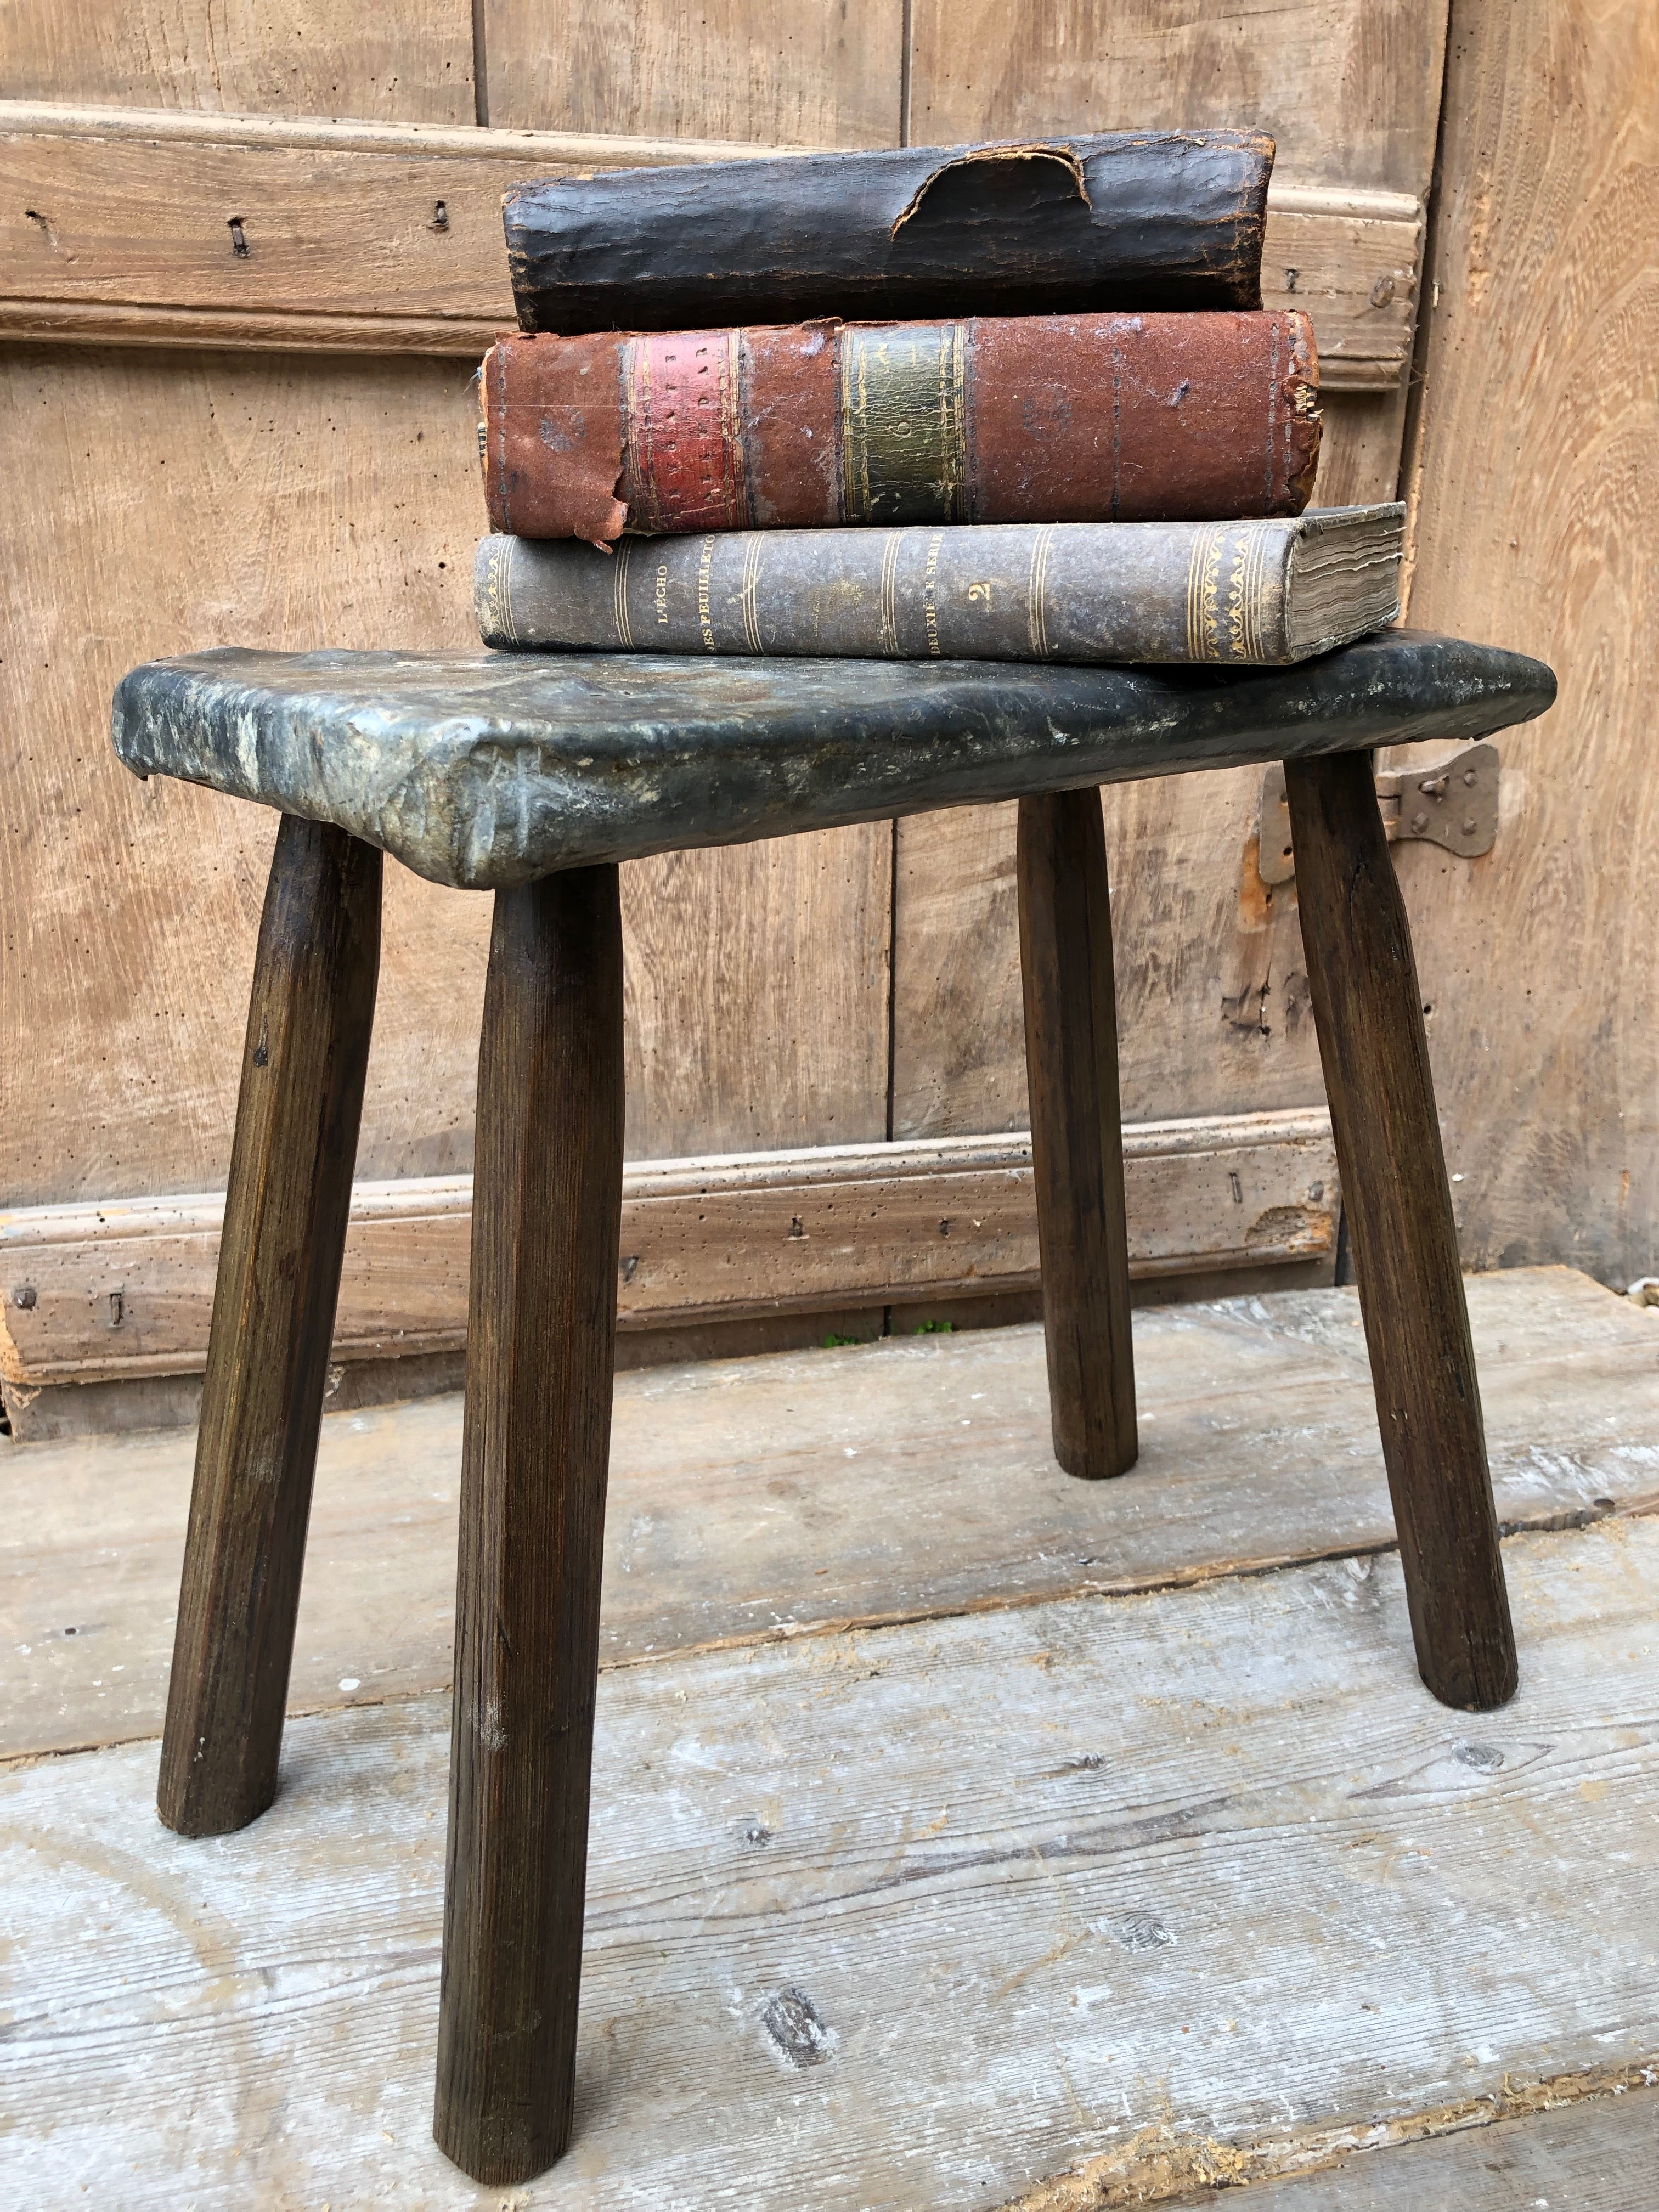 Unusual lead topped 19th century stool